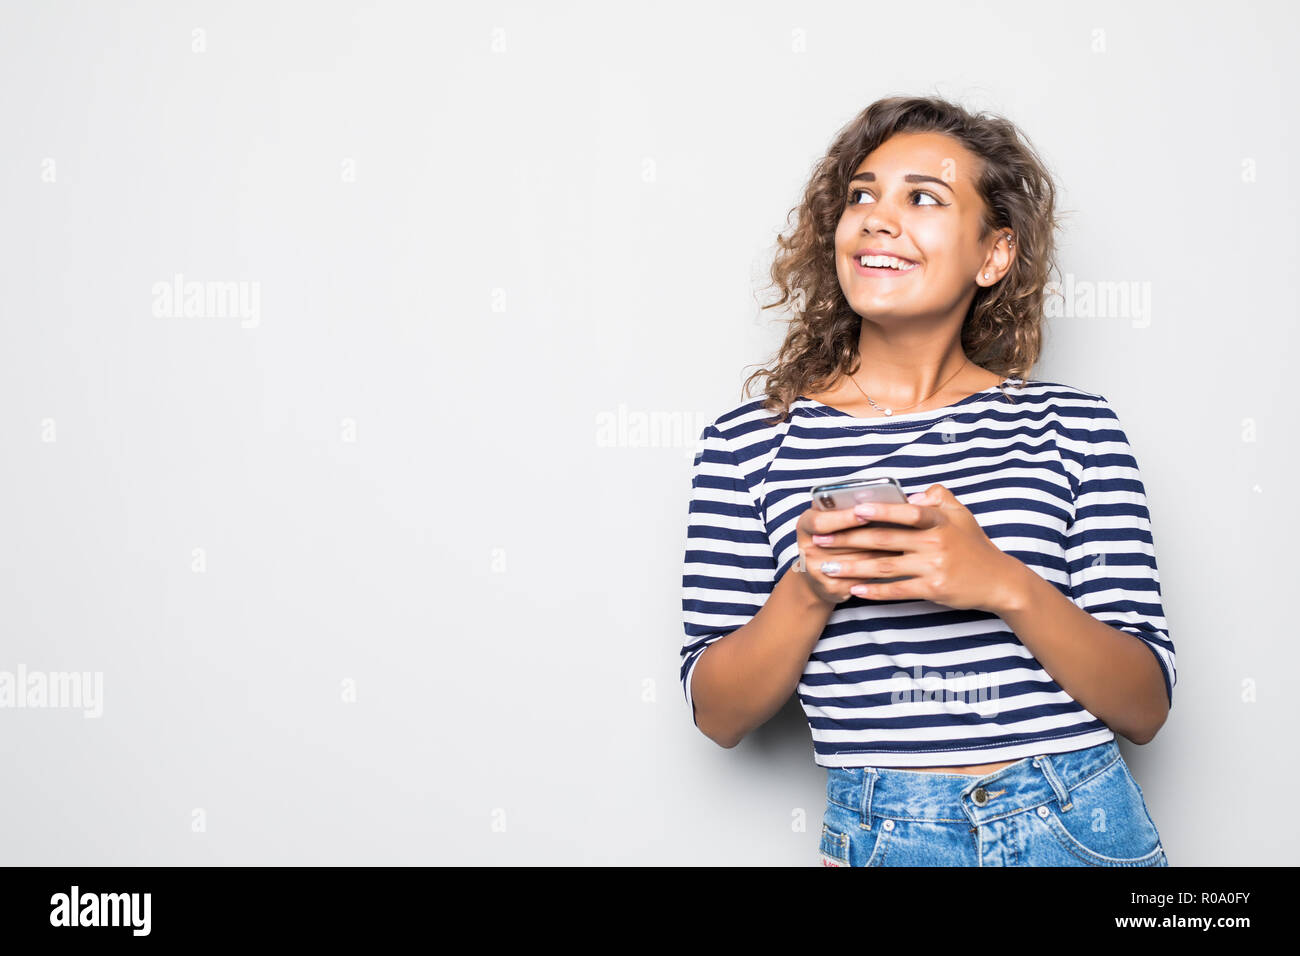 Cheerful mulatto woman tuping on the phone isolated on gray background Stock Photo